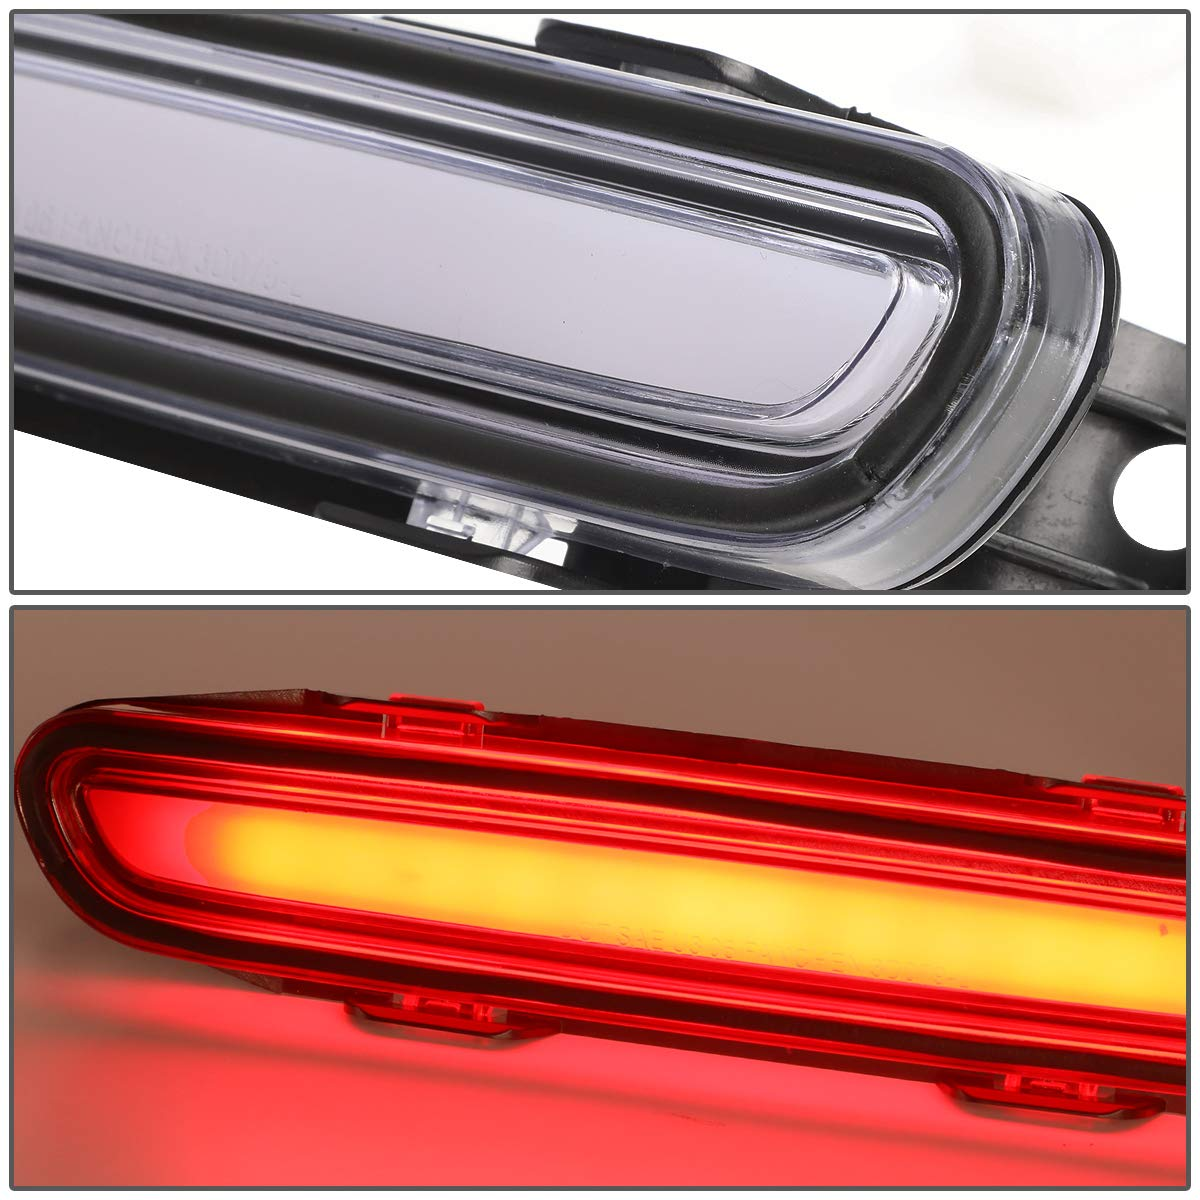 DNA Motoring Smoke 3BL-CHA06-3D-LED-SM 3D LED Bar 3rd Tail Brake Light Rear Center Stop Lamp